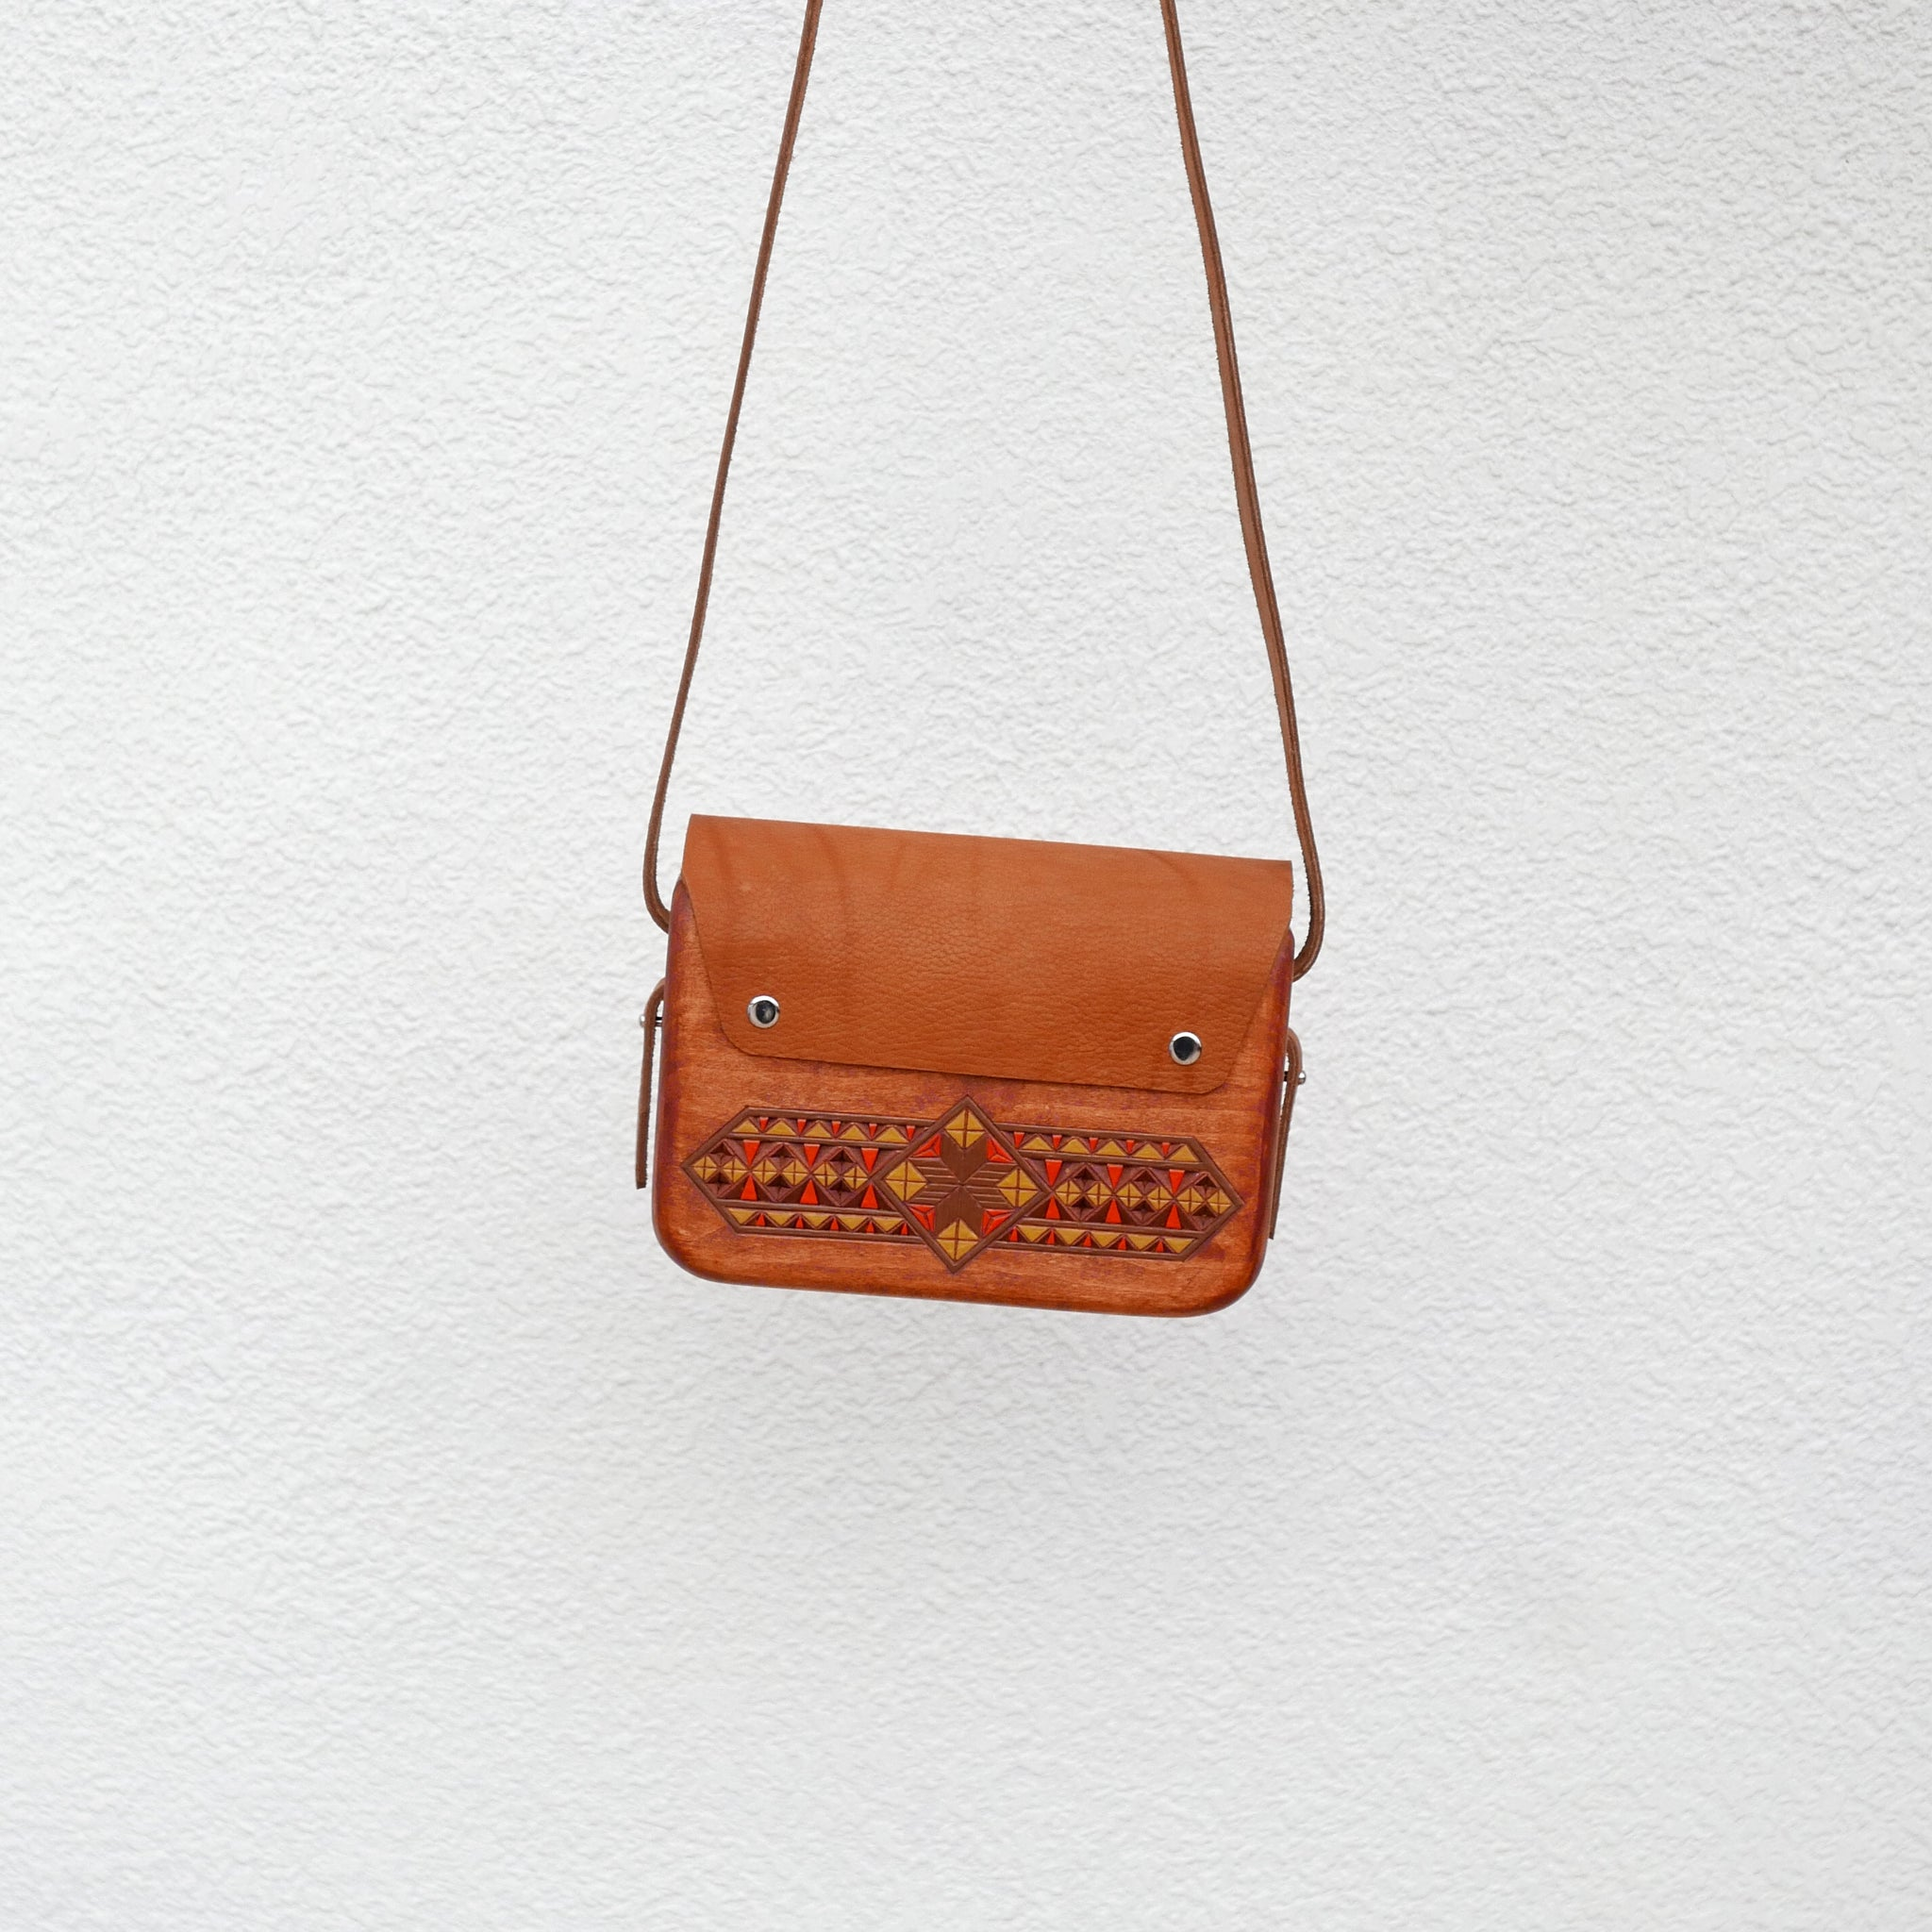 Wooden Bags (Rectangle 2 . sandy brown leather / walnut wood / coloured patterns)